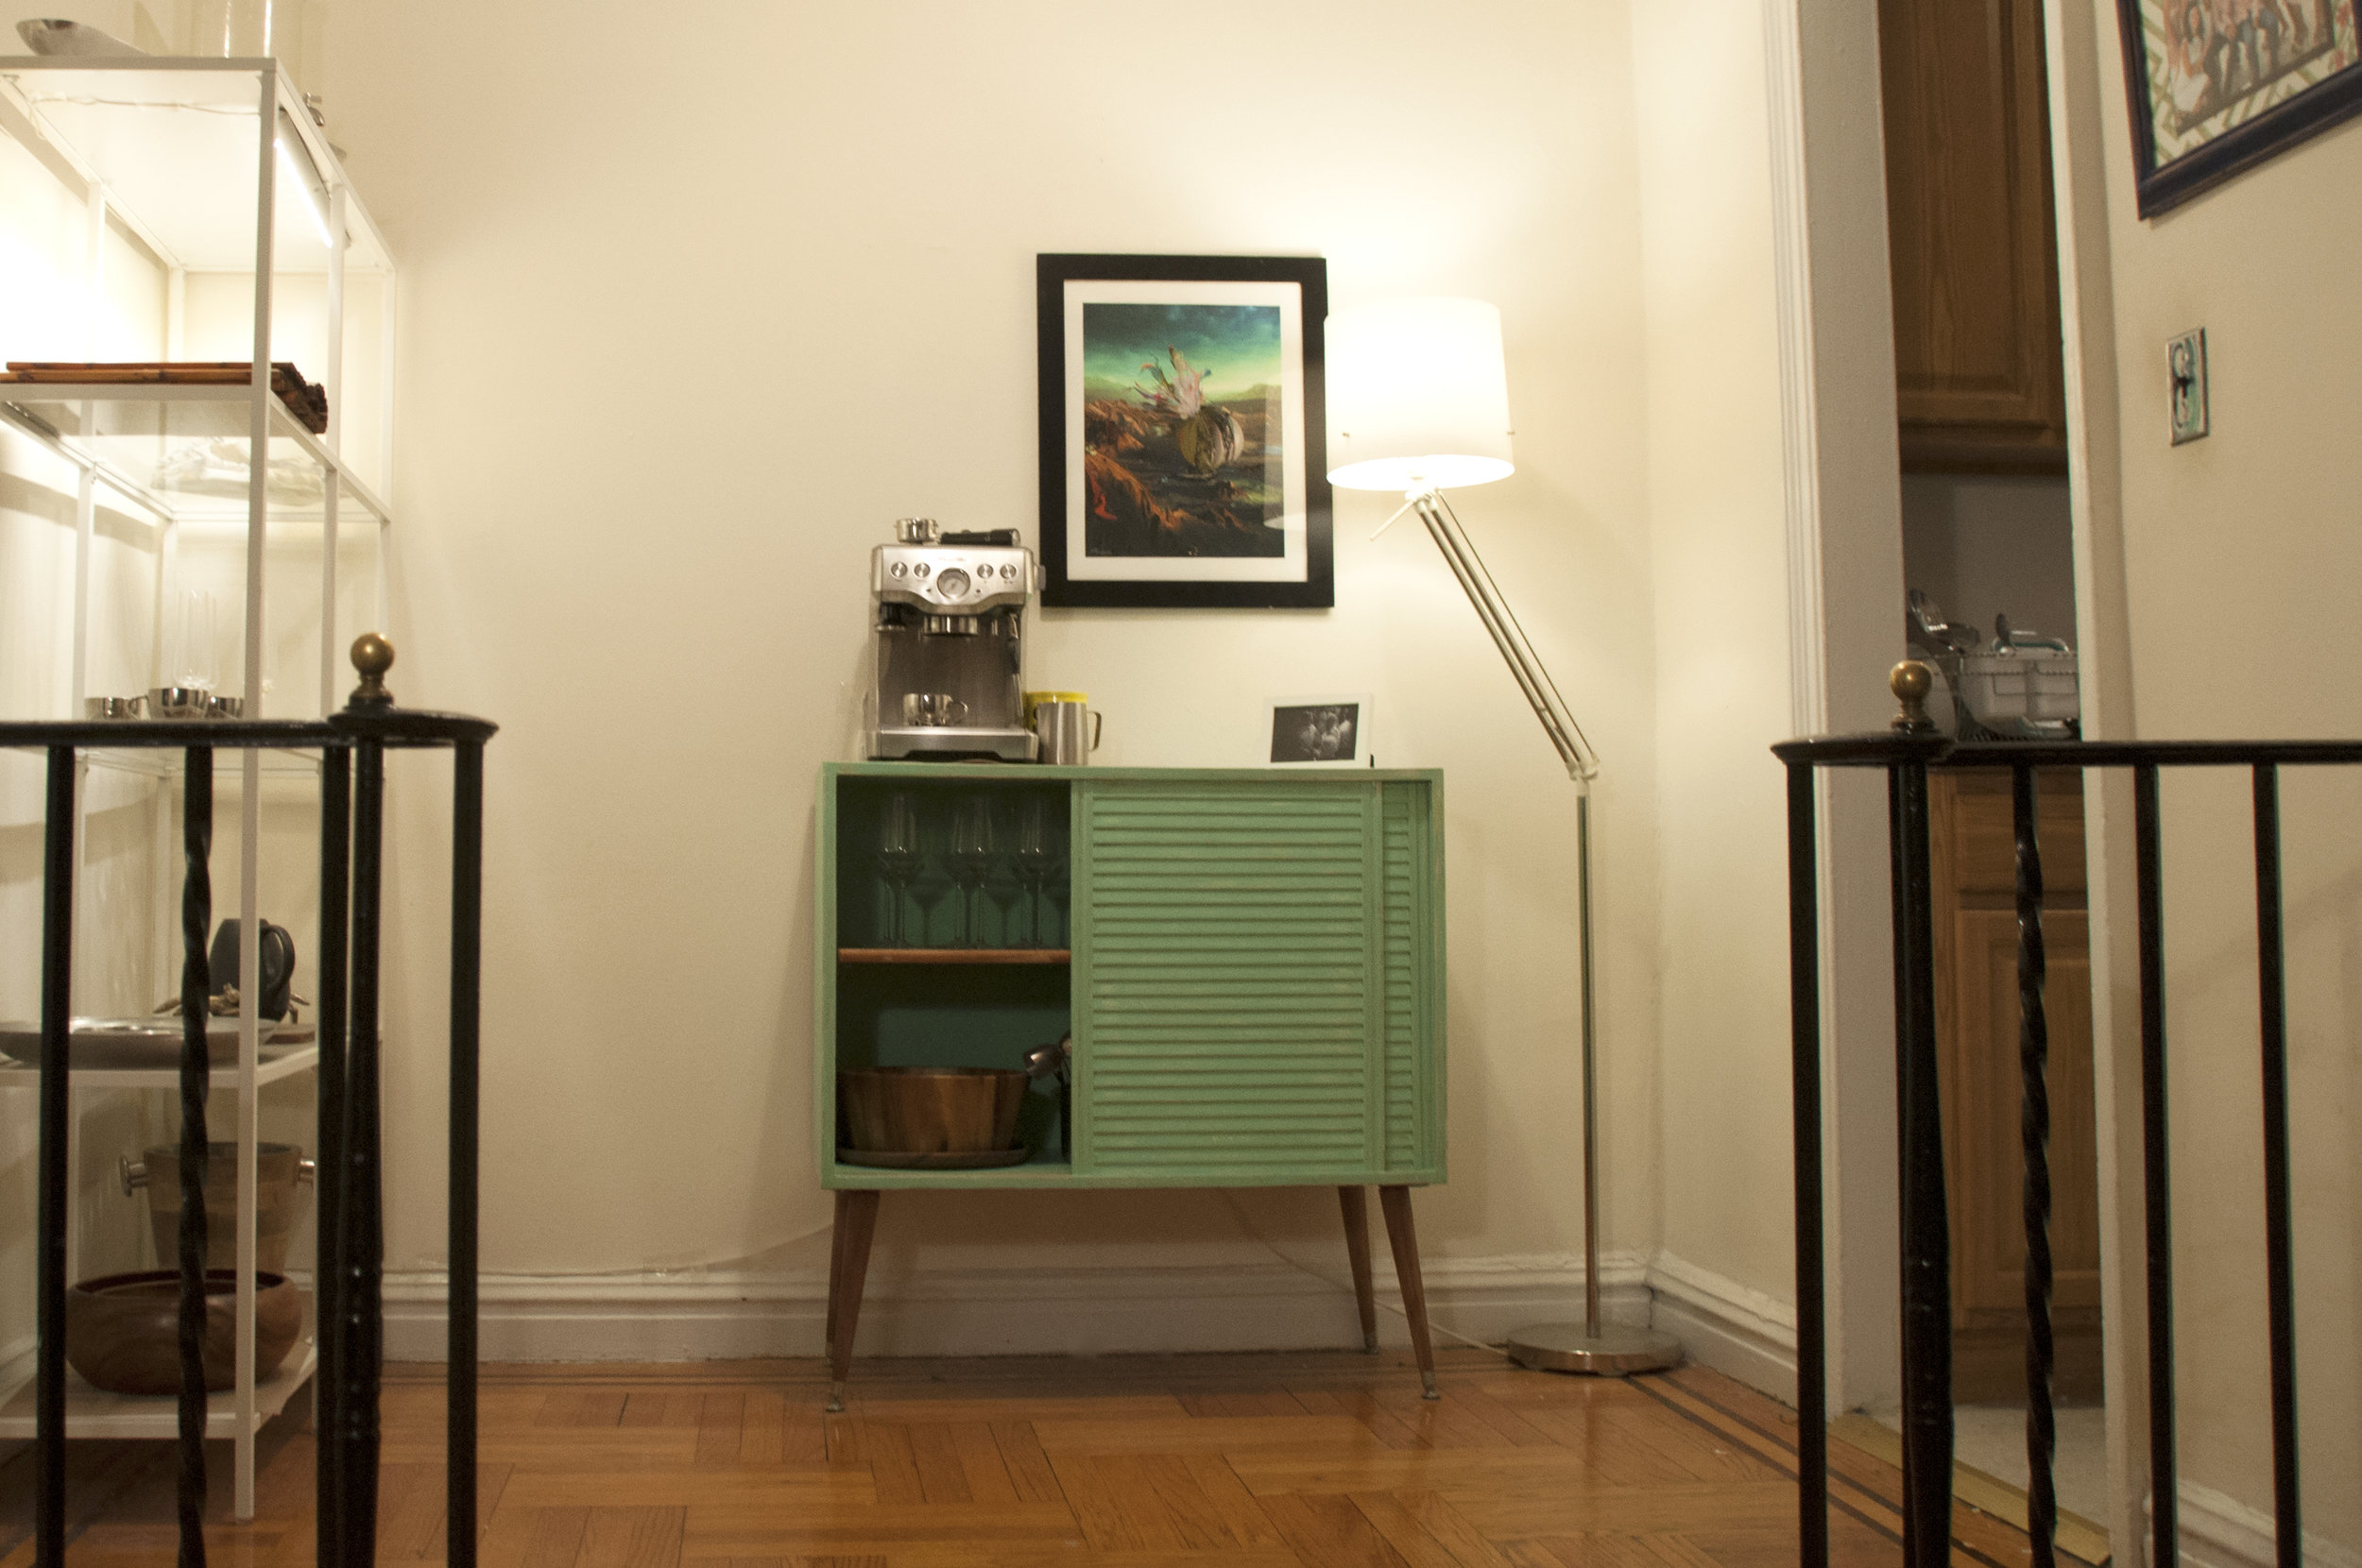 Our new coffee maker stand